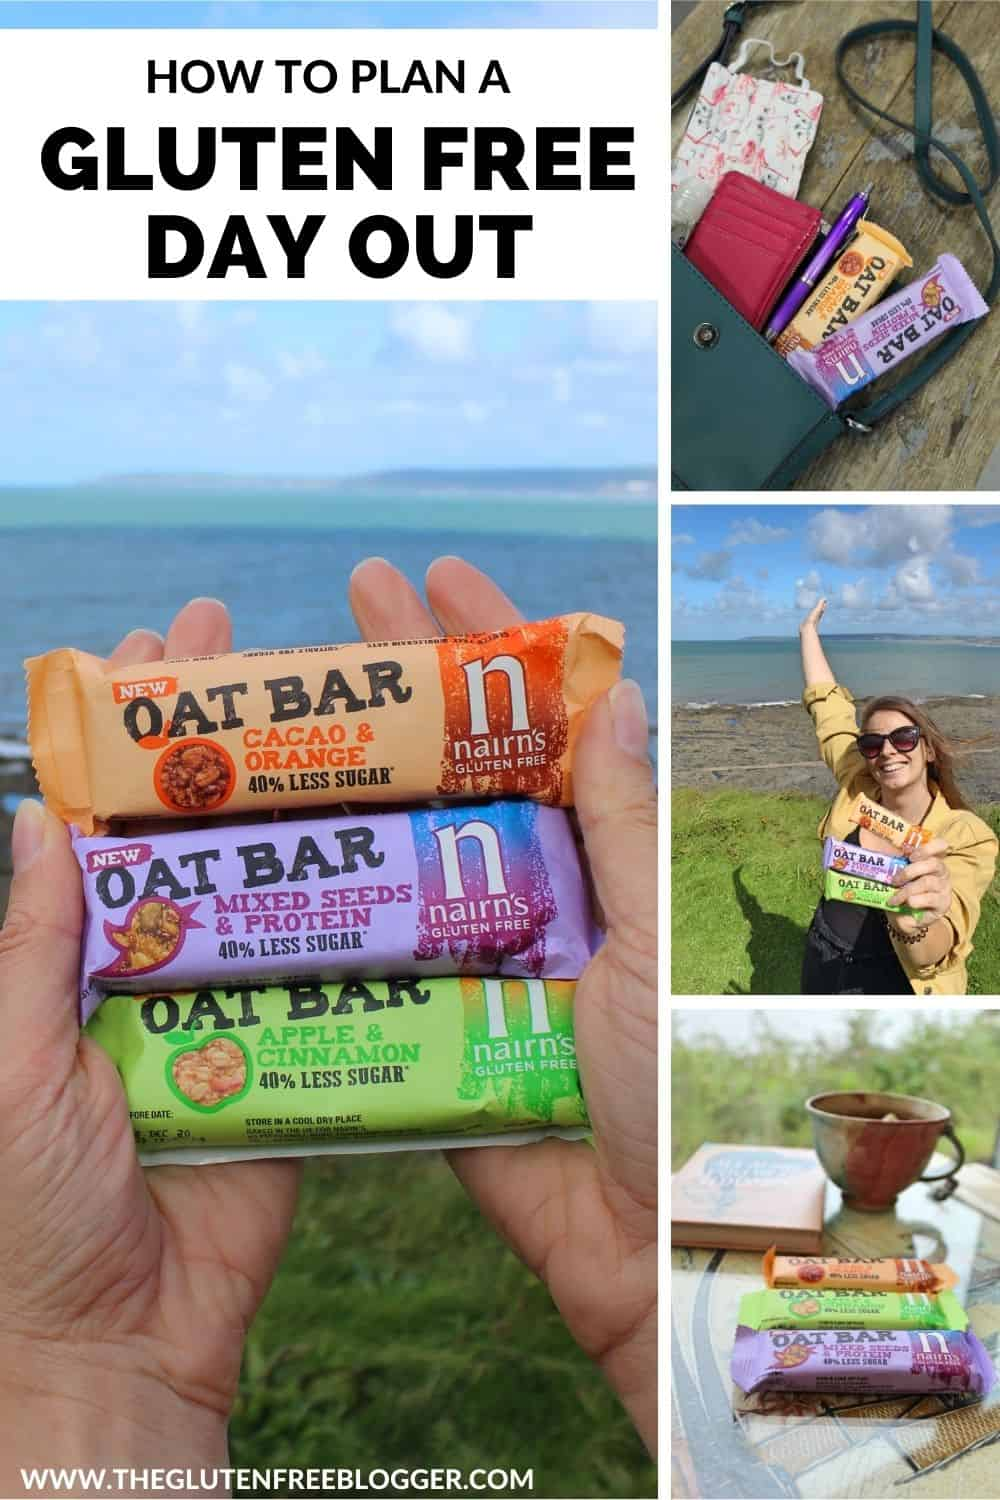 How to plan a gluten free day out